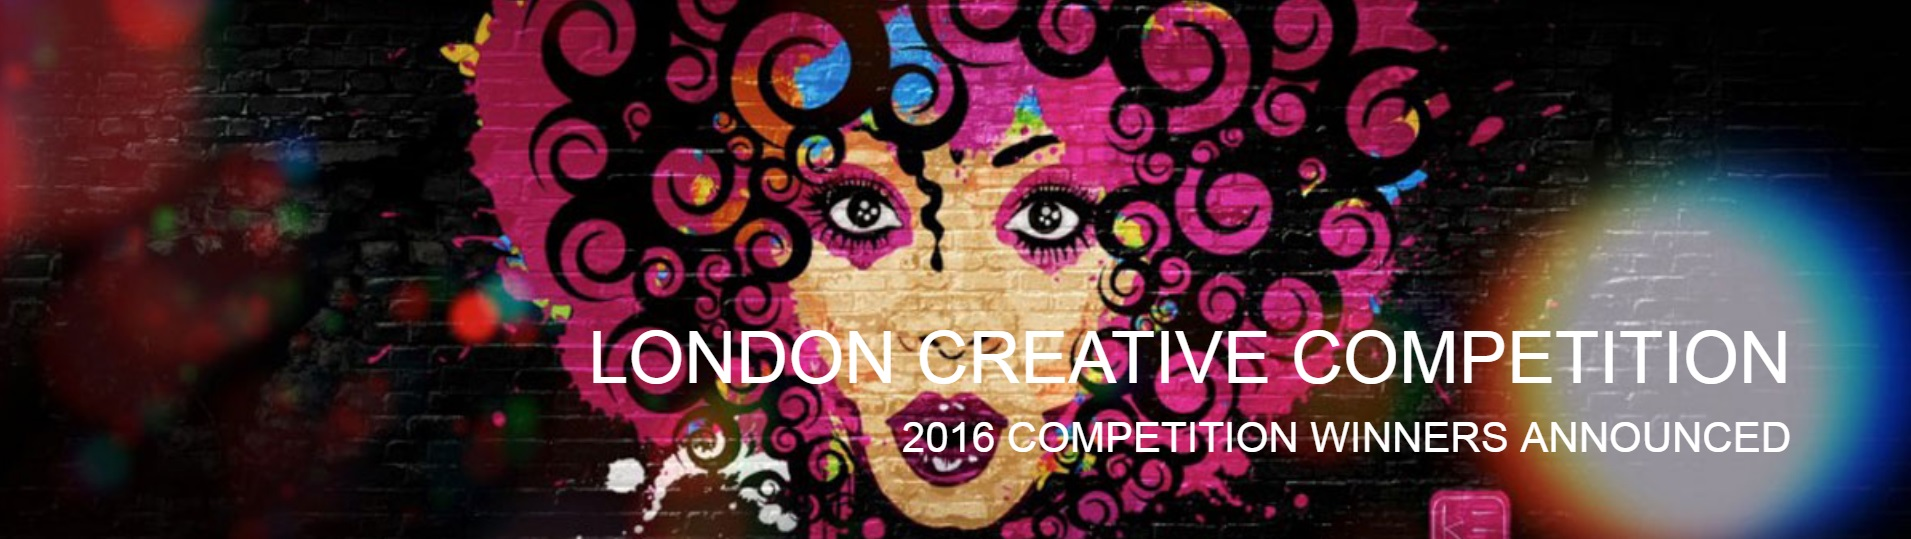 london creative competition